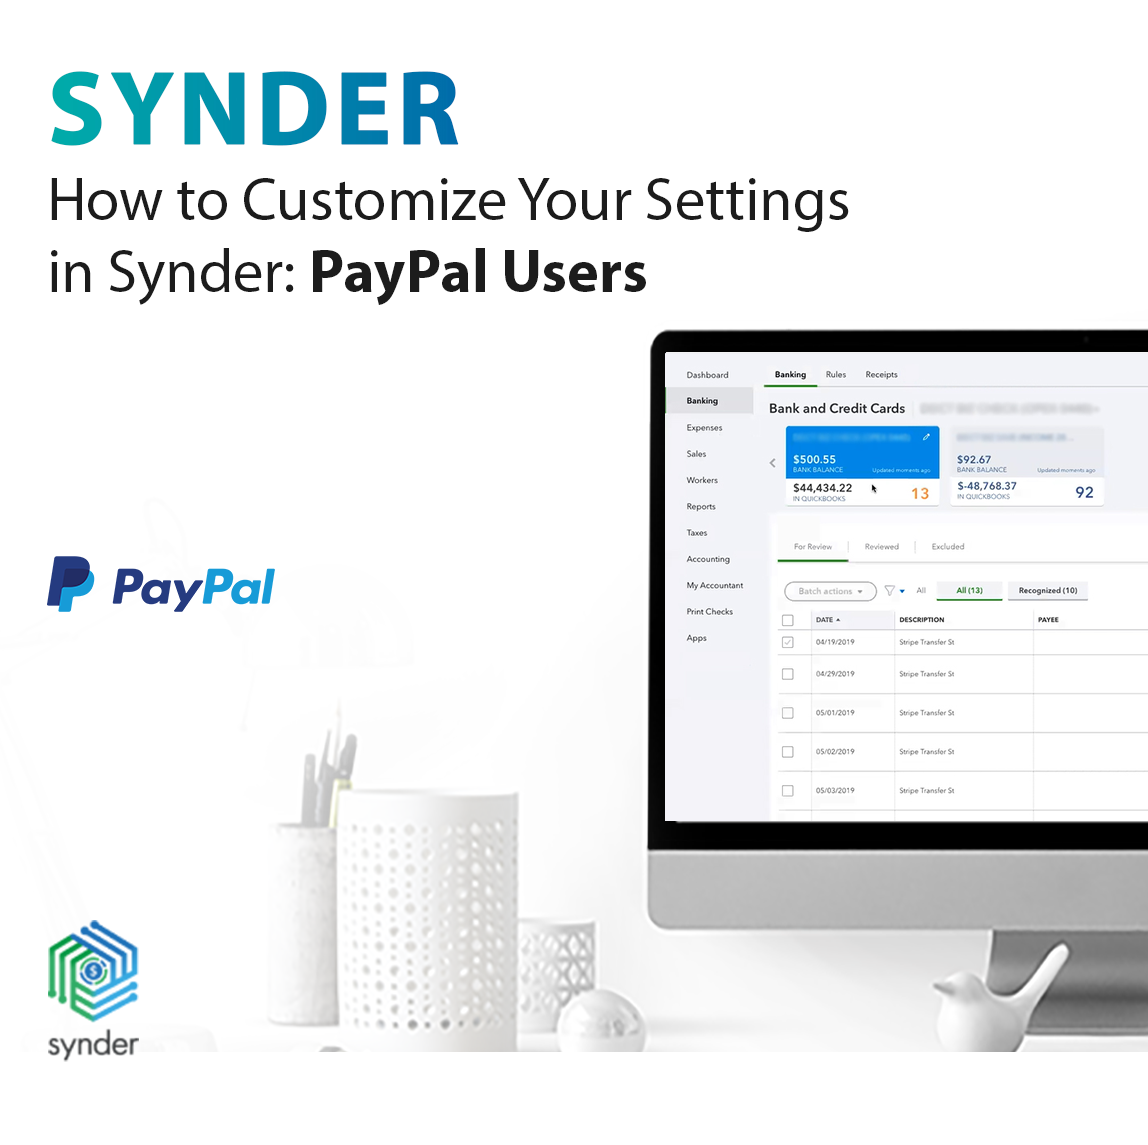 How to Customize Your Settings in Synder- PayPal Users